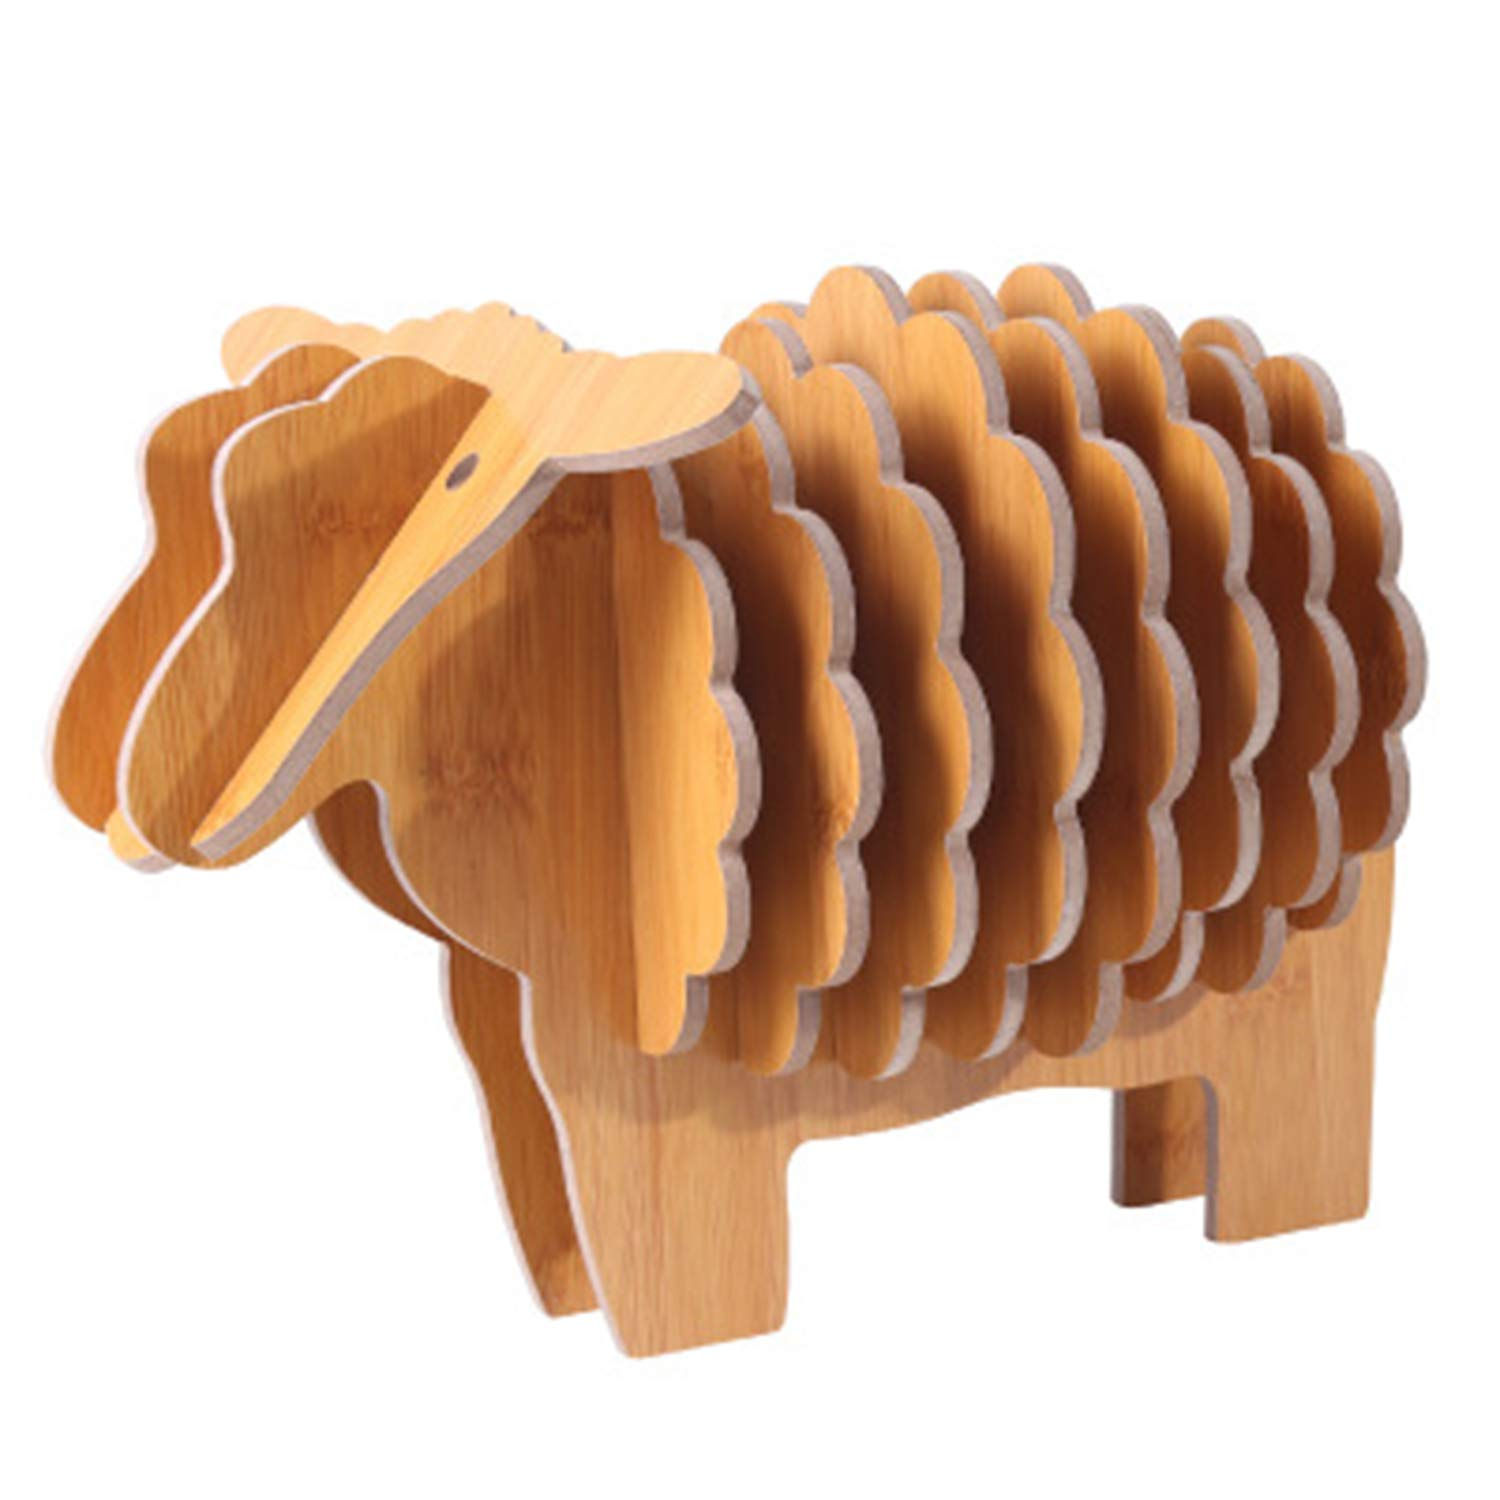 VSTON Wooden Sheep Coaster DIY Handmade Coaster Mat Simple Sheep Shape 3D Insulated Coaster Home Decor Office Decoration(11PCS)